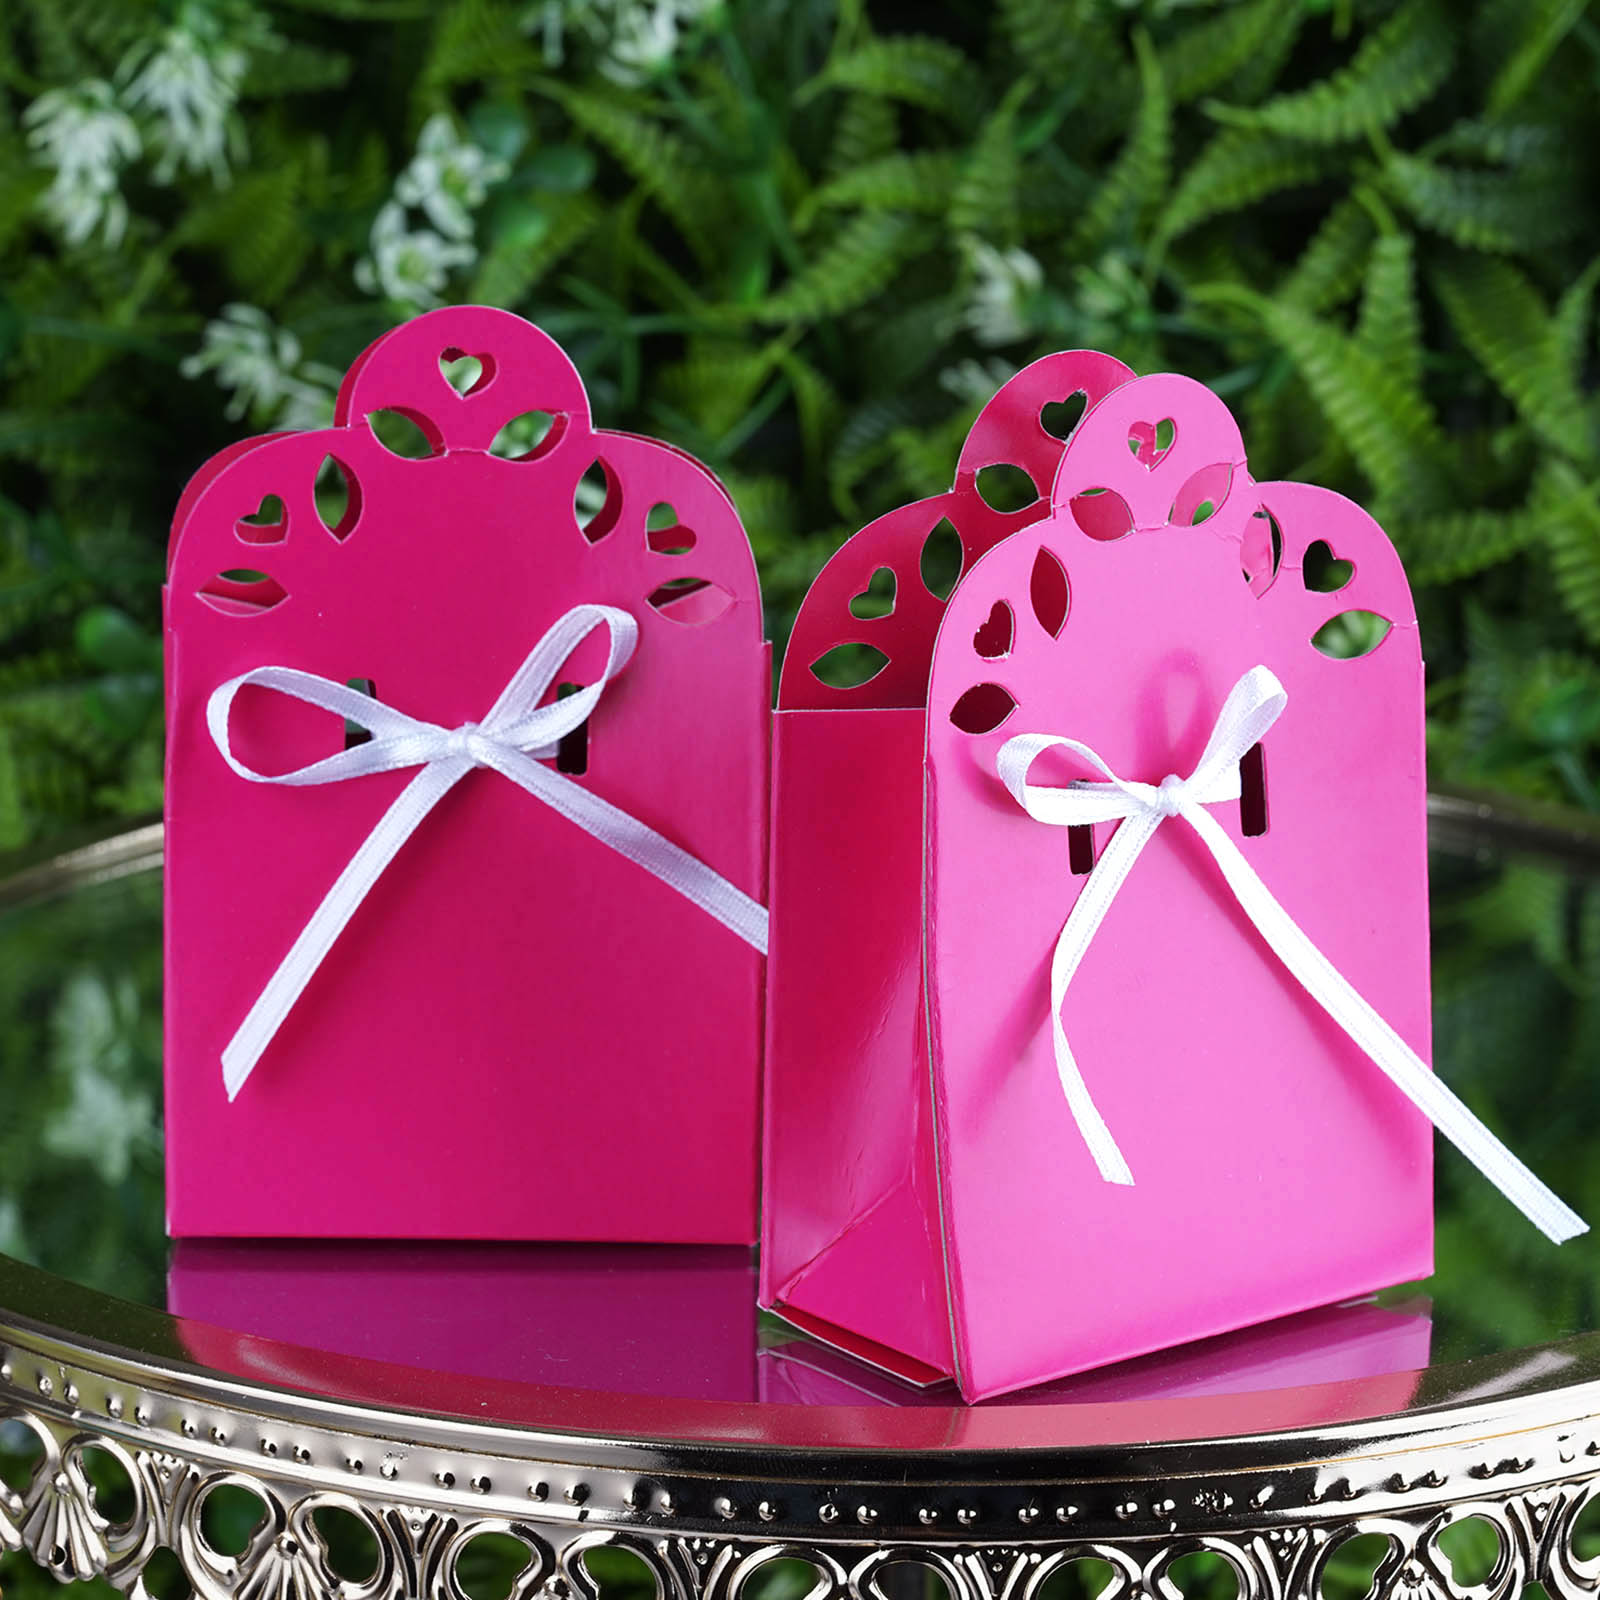 BalsaCircle 100 Cute Wedding Favor Boxes with Ribbons - Wedding Party Candy Gifts Decorations Supplies